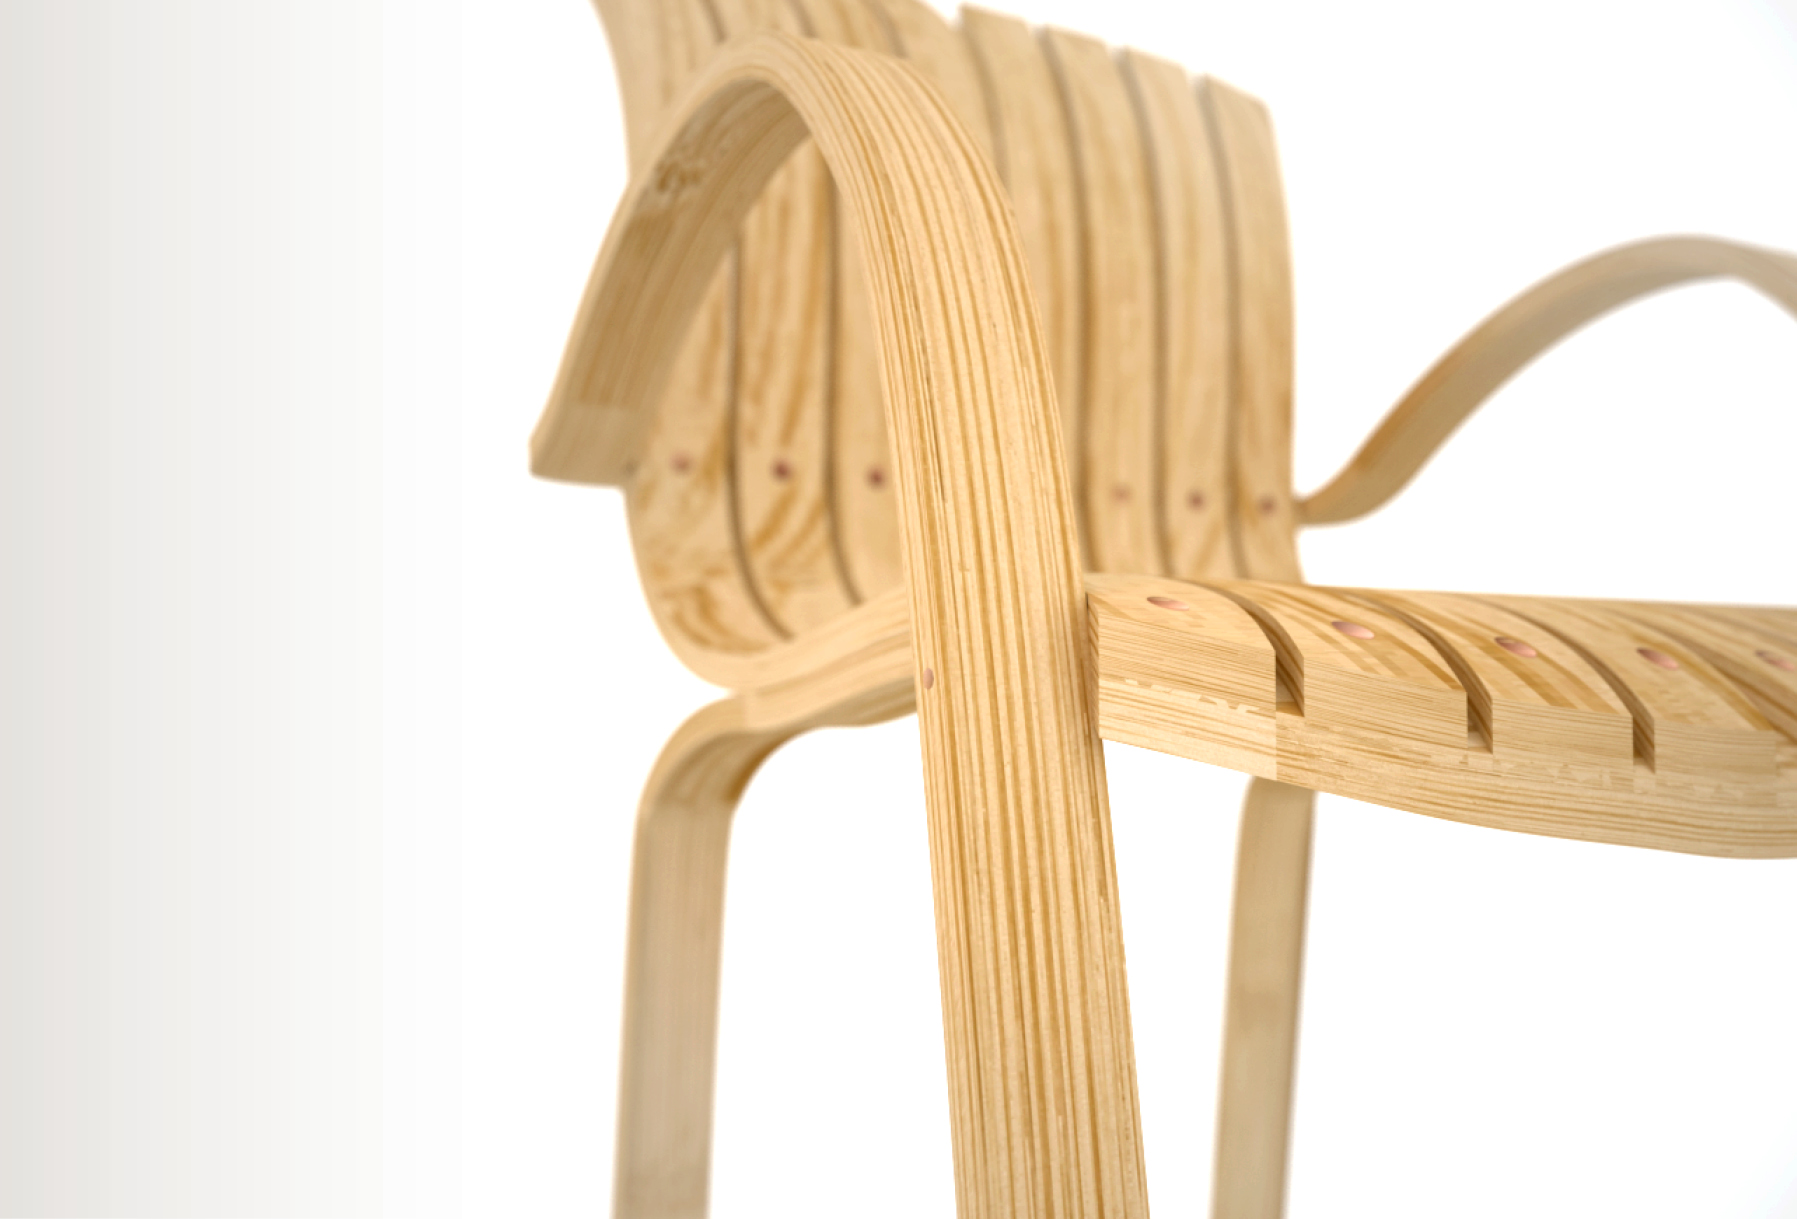 The Chair Is Made Of 5 Parts Of Multi Ply Laminated Bamboo Strips With Wood  Screws As Fasteners. This Concept Was Created Using Rhino And Maxwell  Render.